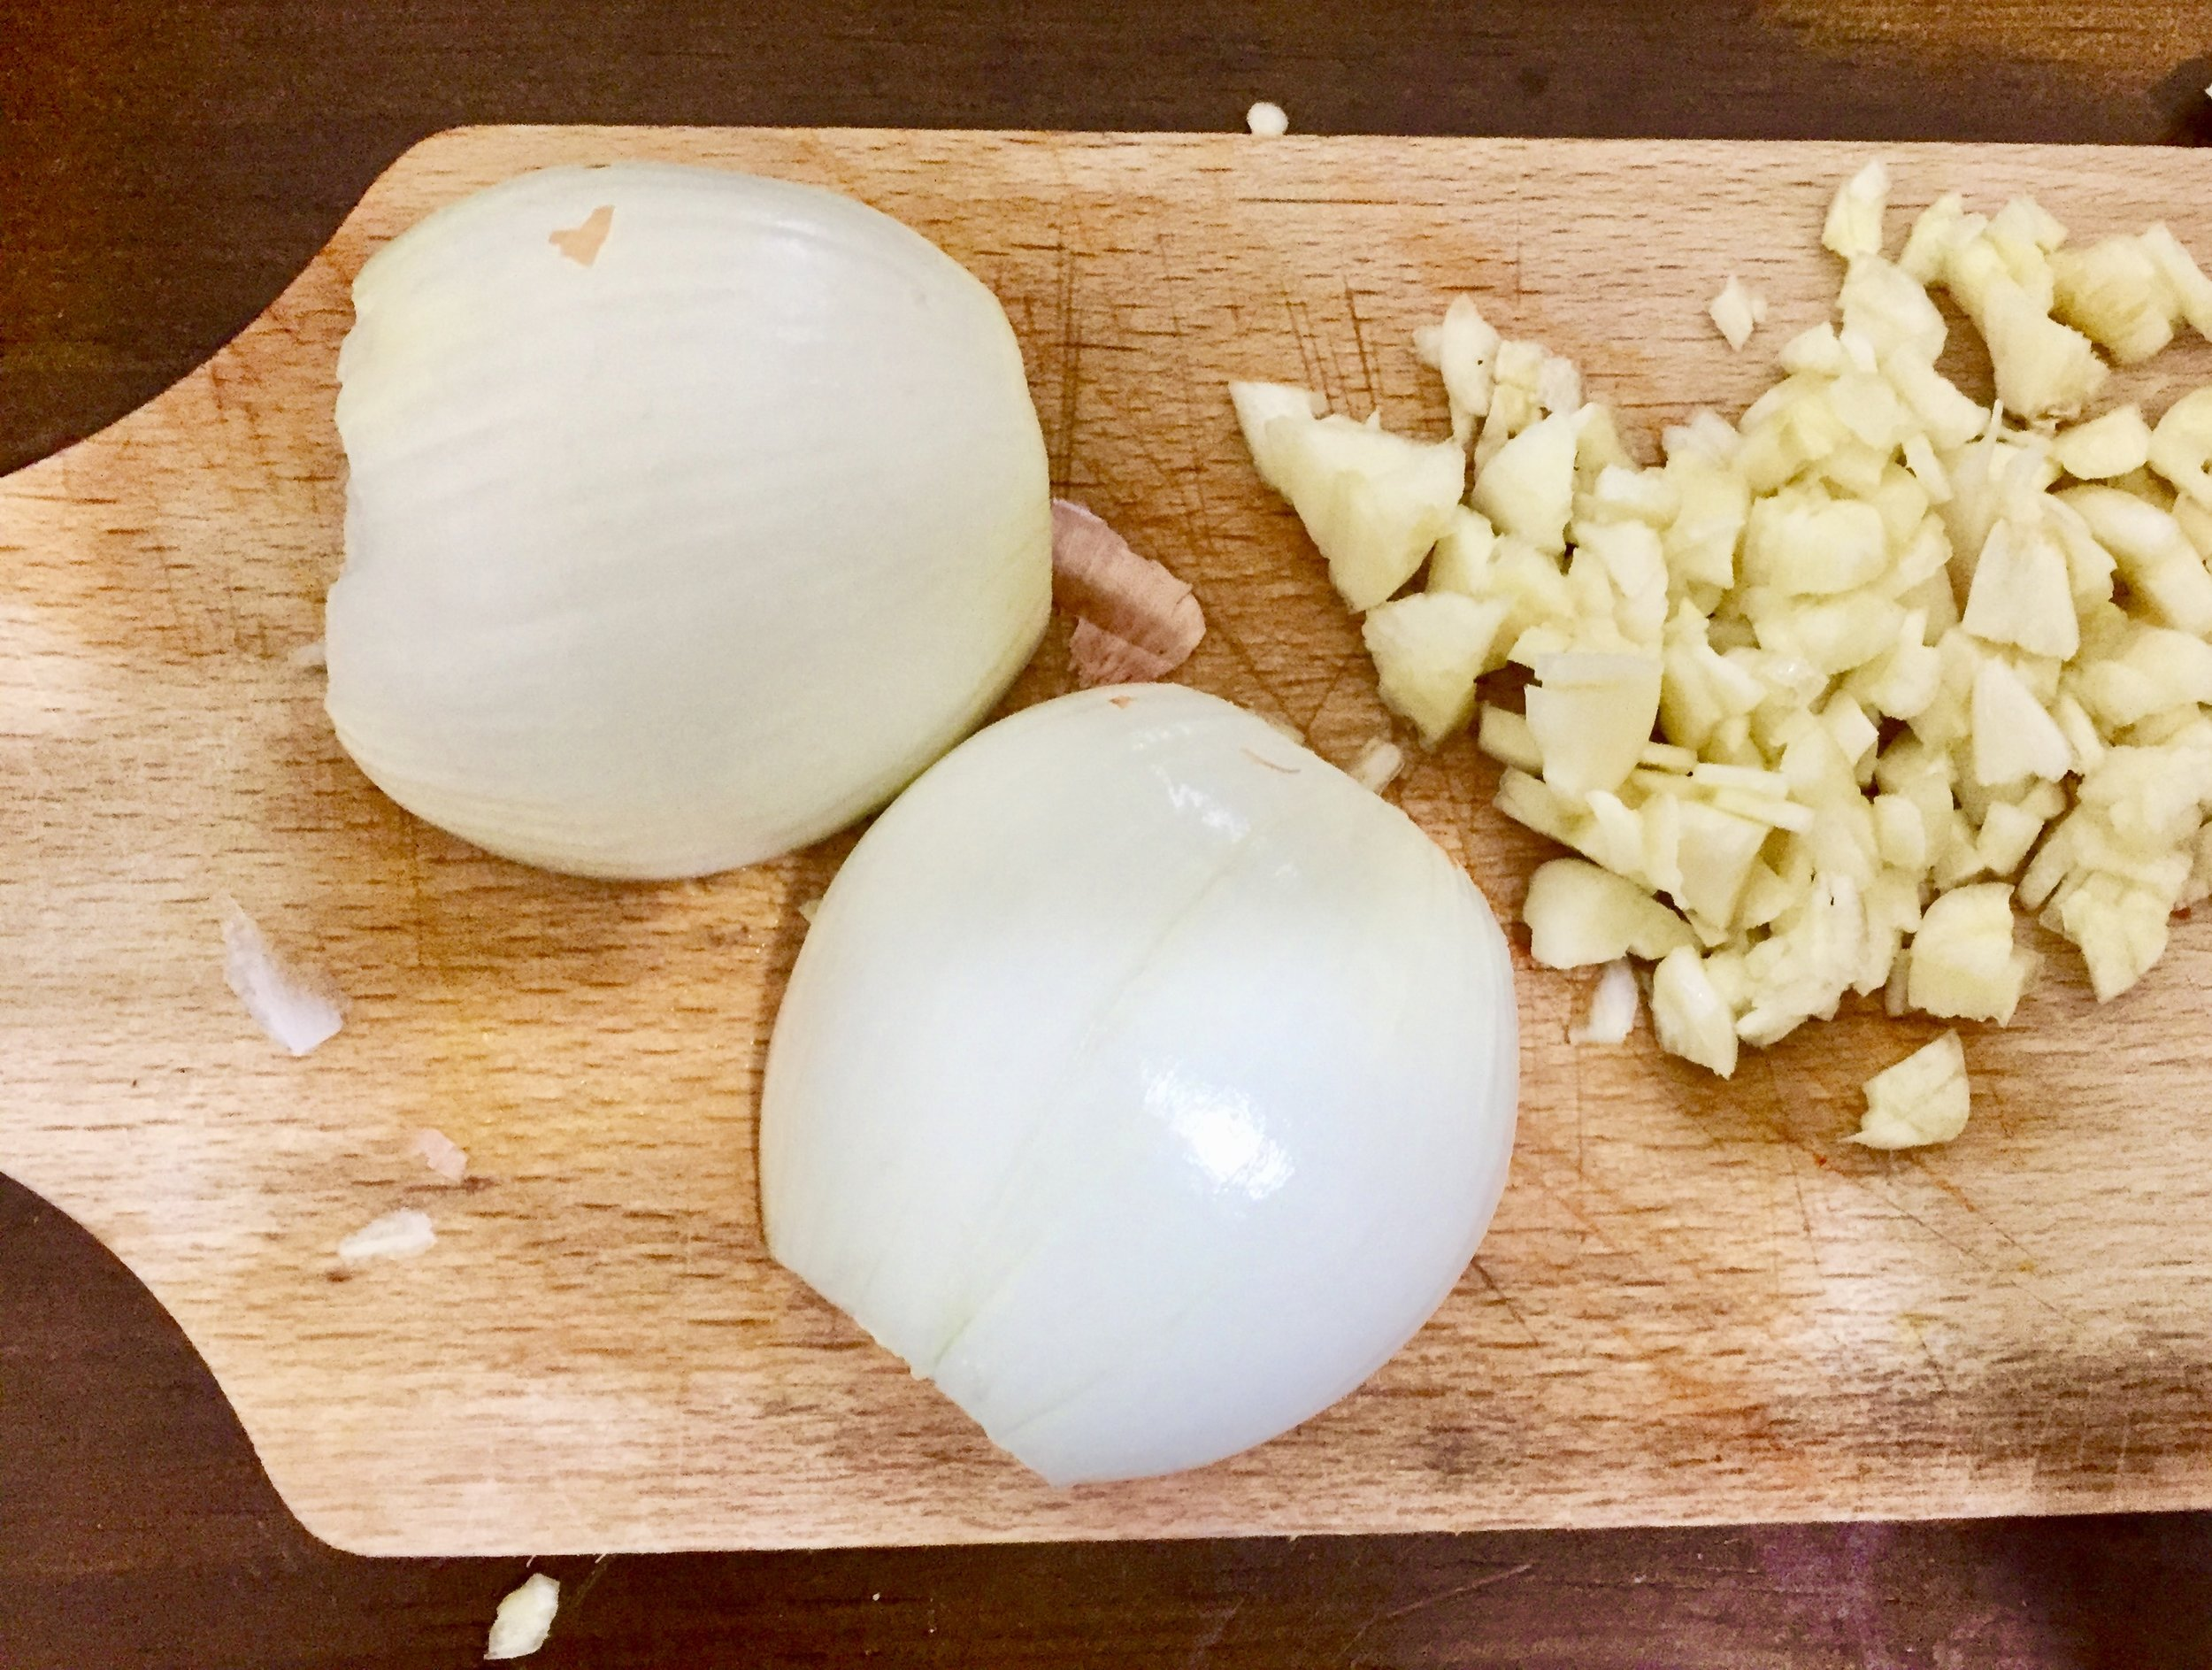 Dice the onion and garlic